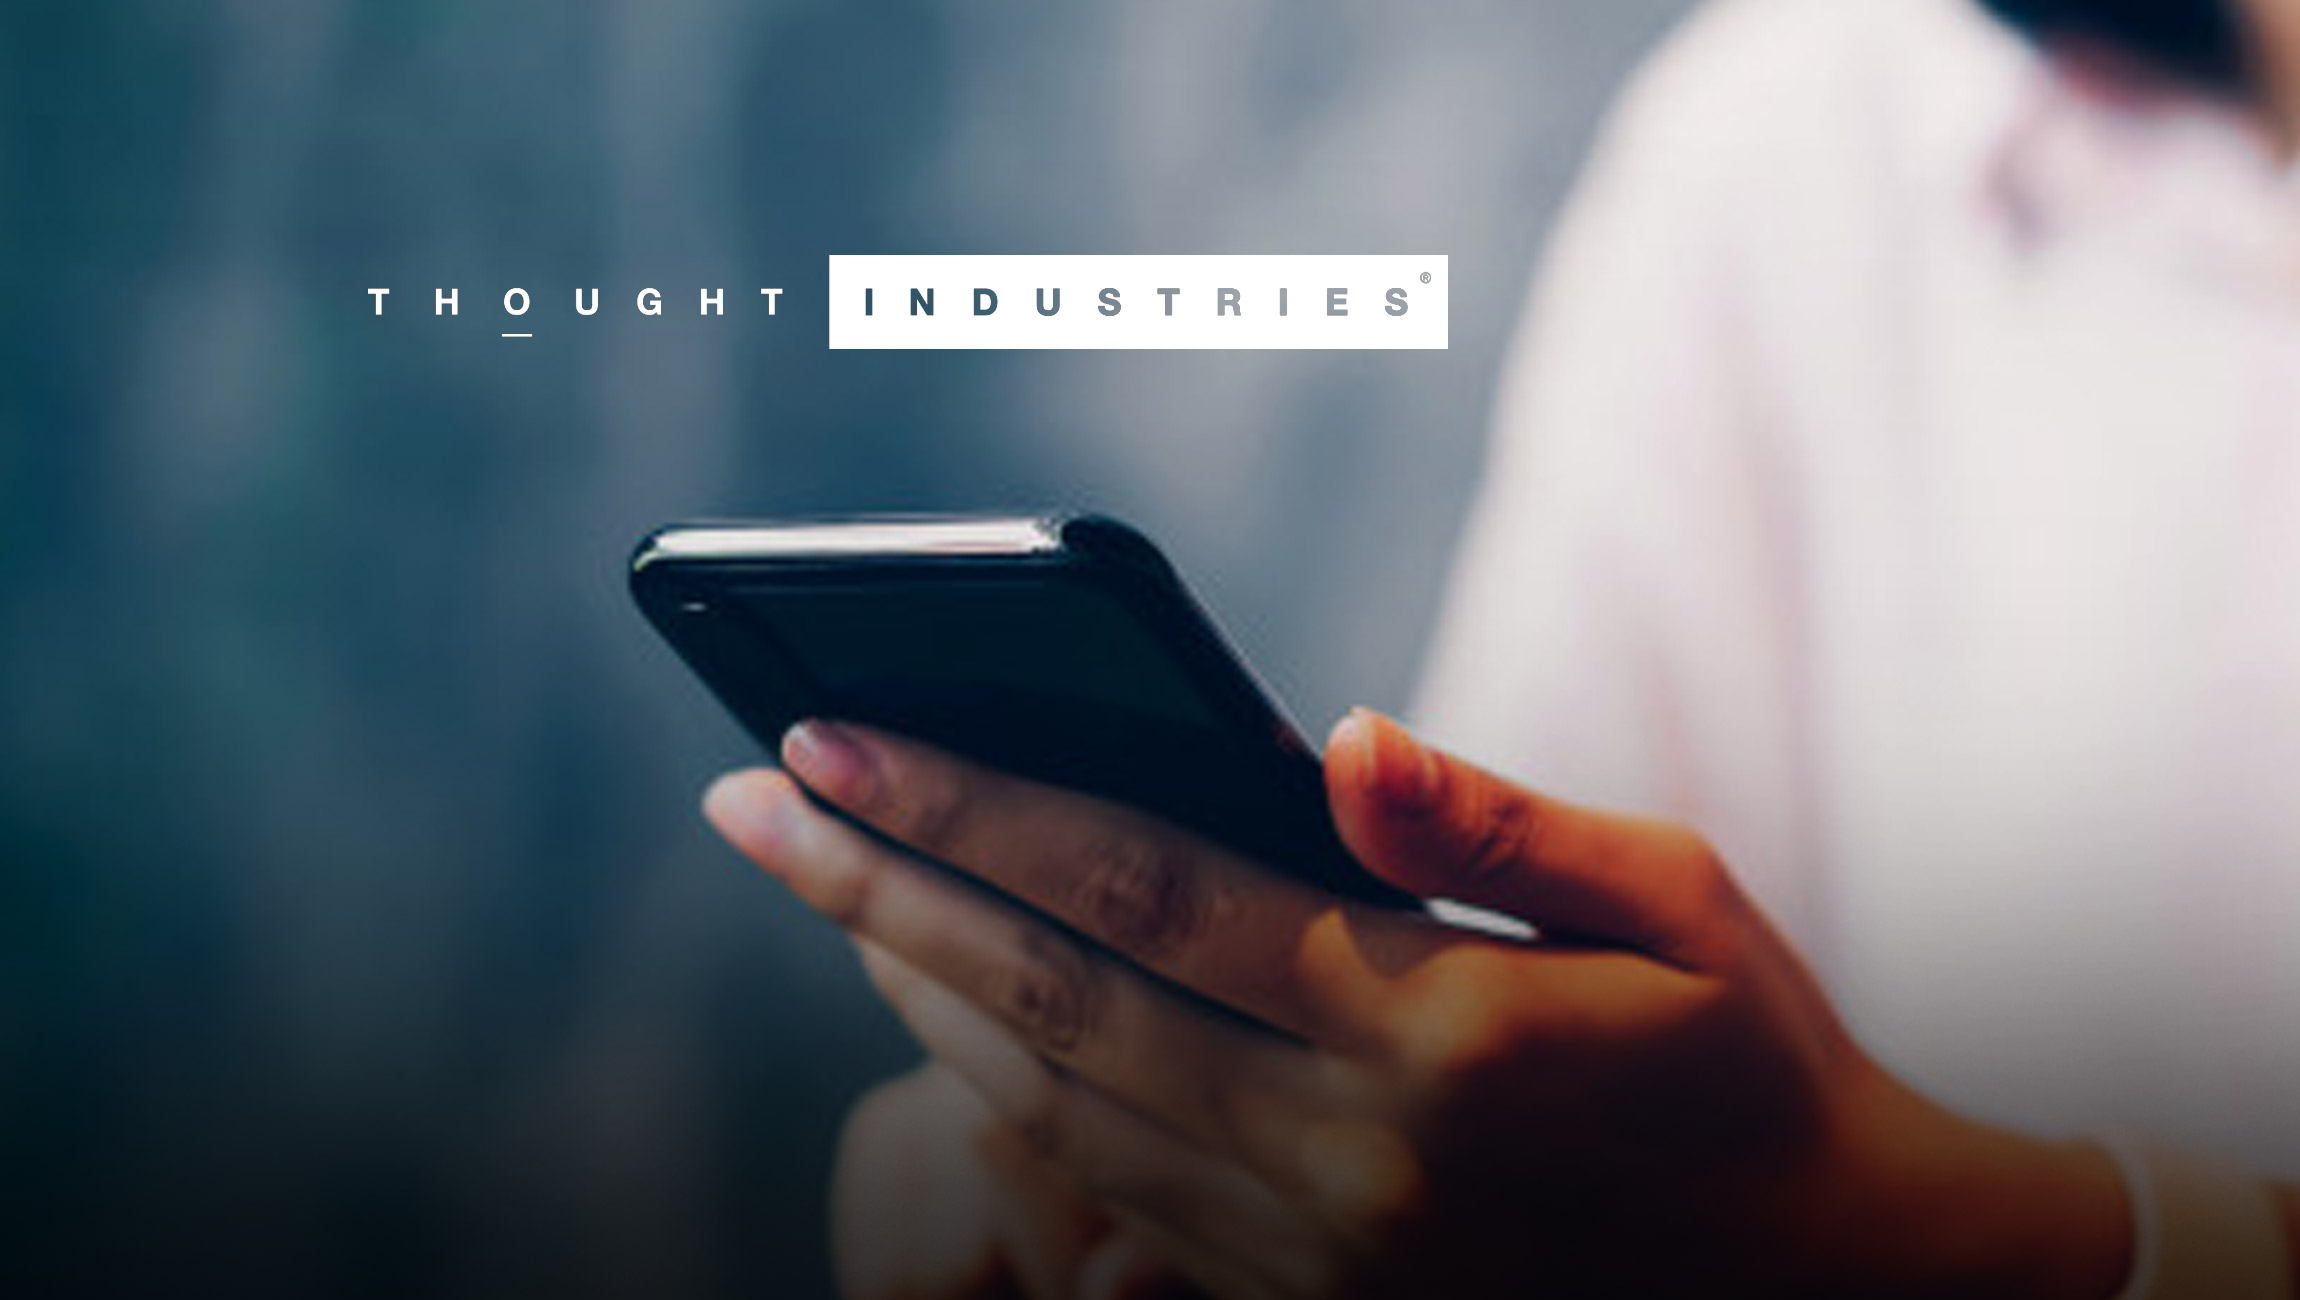 Thought Industries Customer Training Platform Selected by Ivanti to Support Renewed Focus on Customer Success